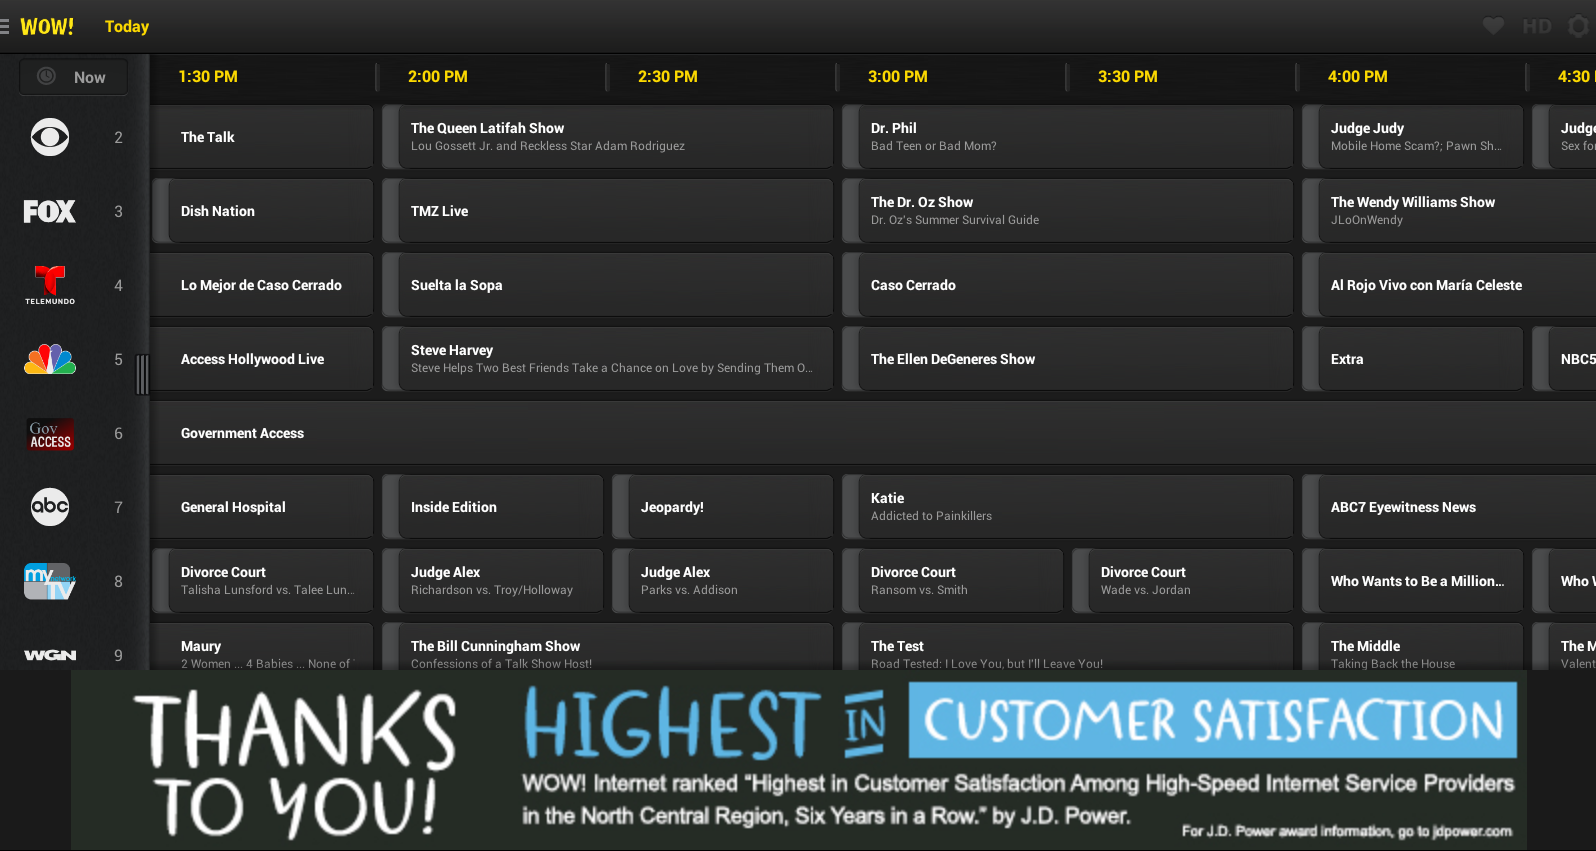 Wow Ultra Tv Android Apps On Google Play